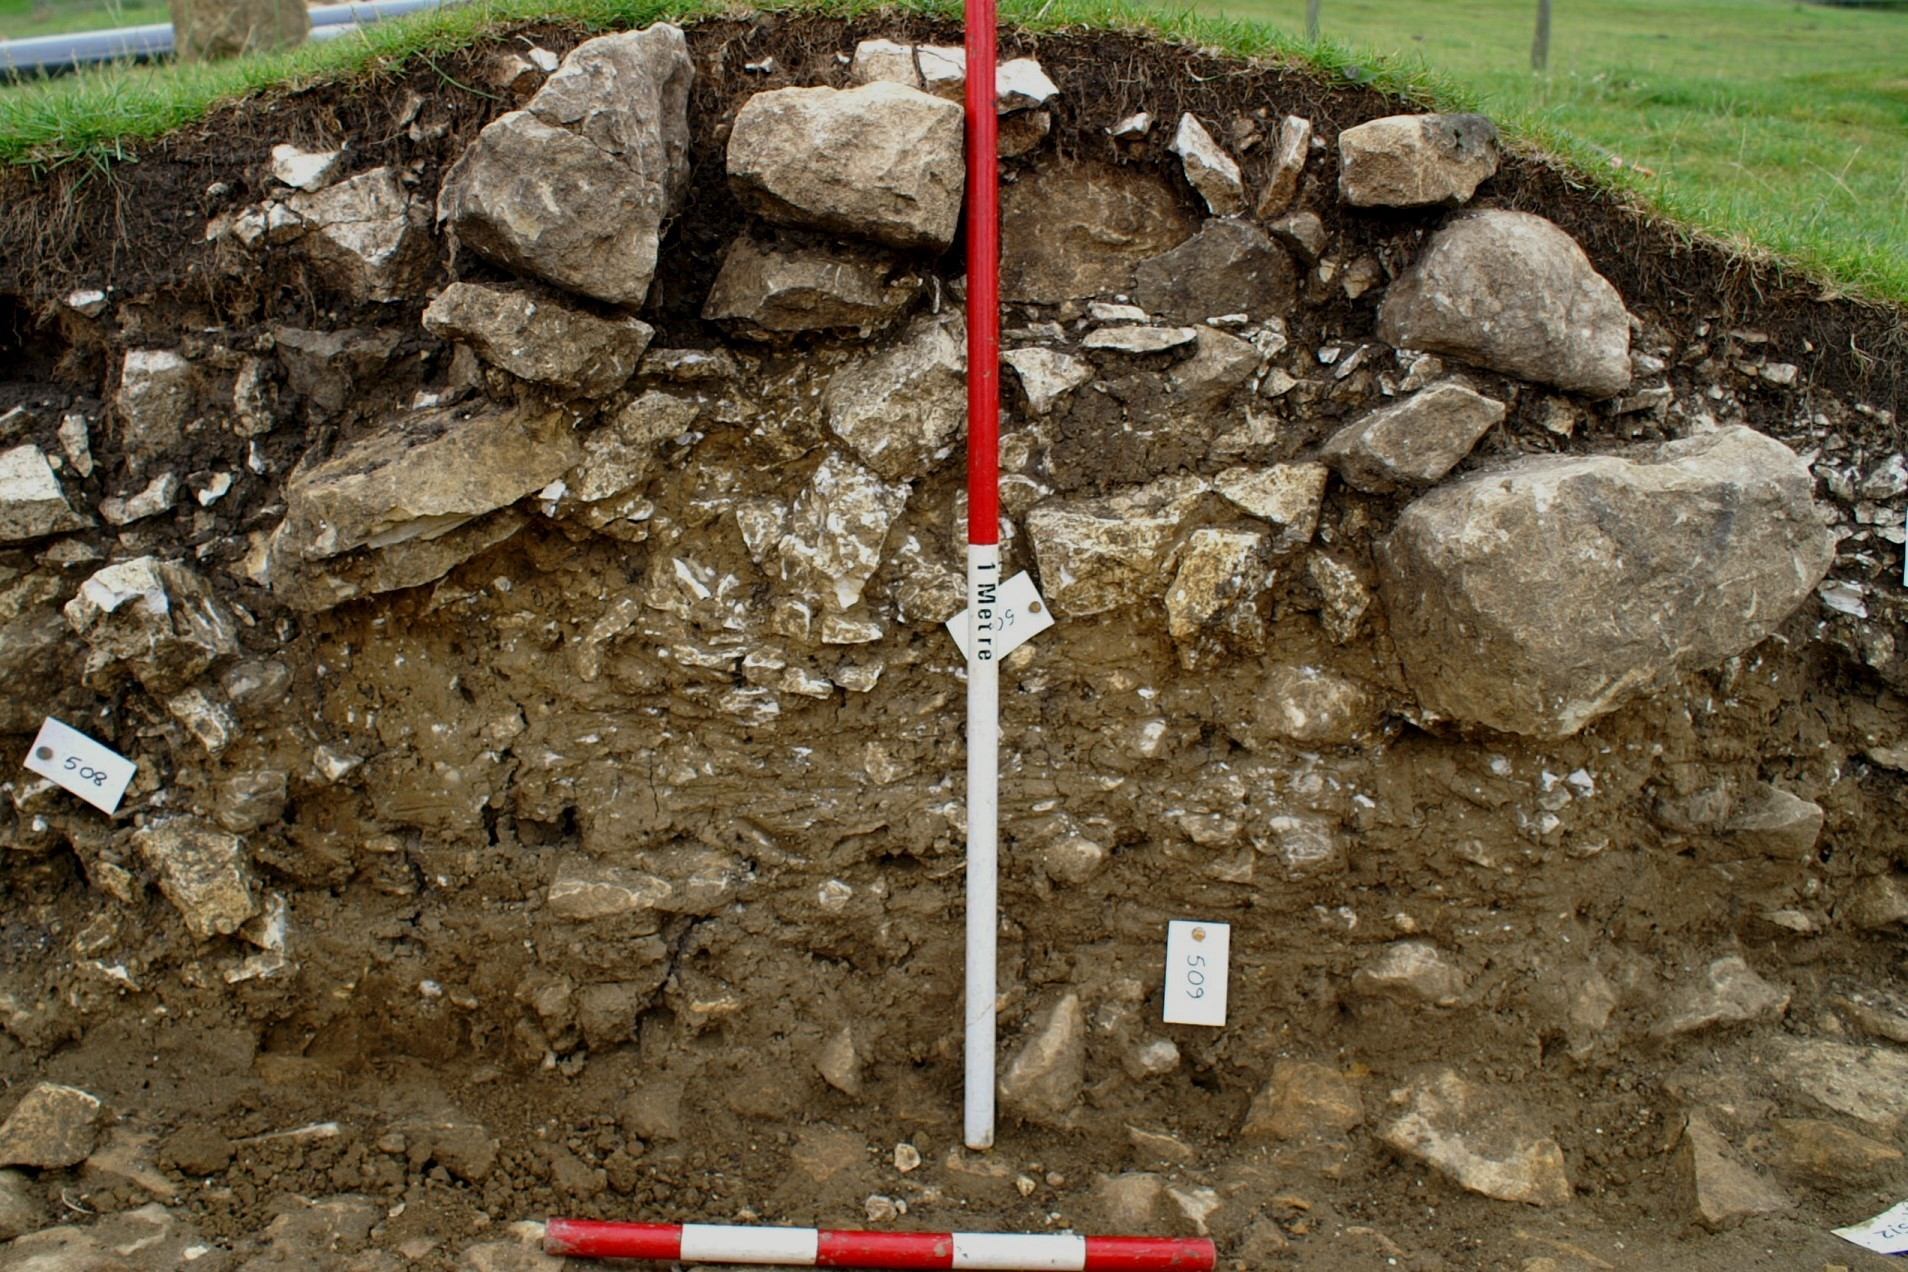 Section through the earthwork in Trench 5